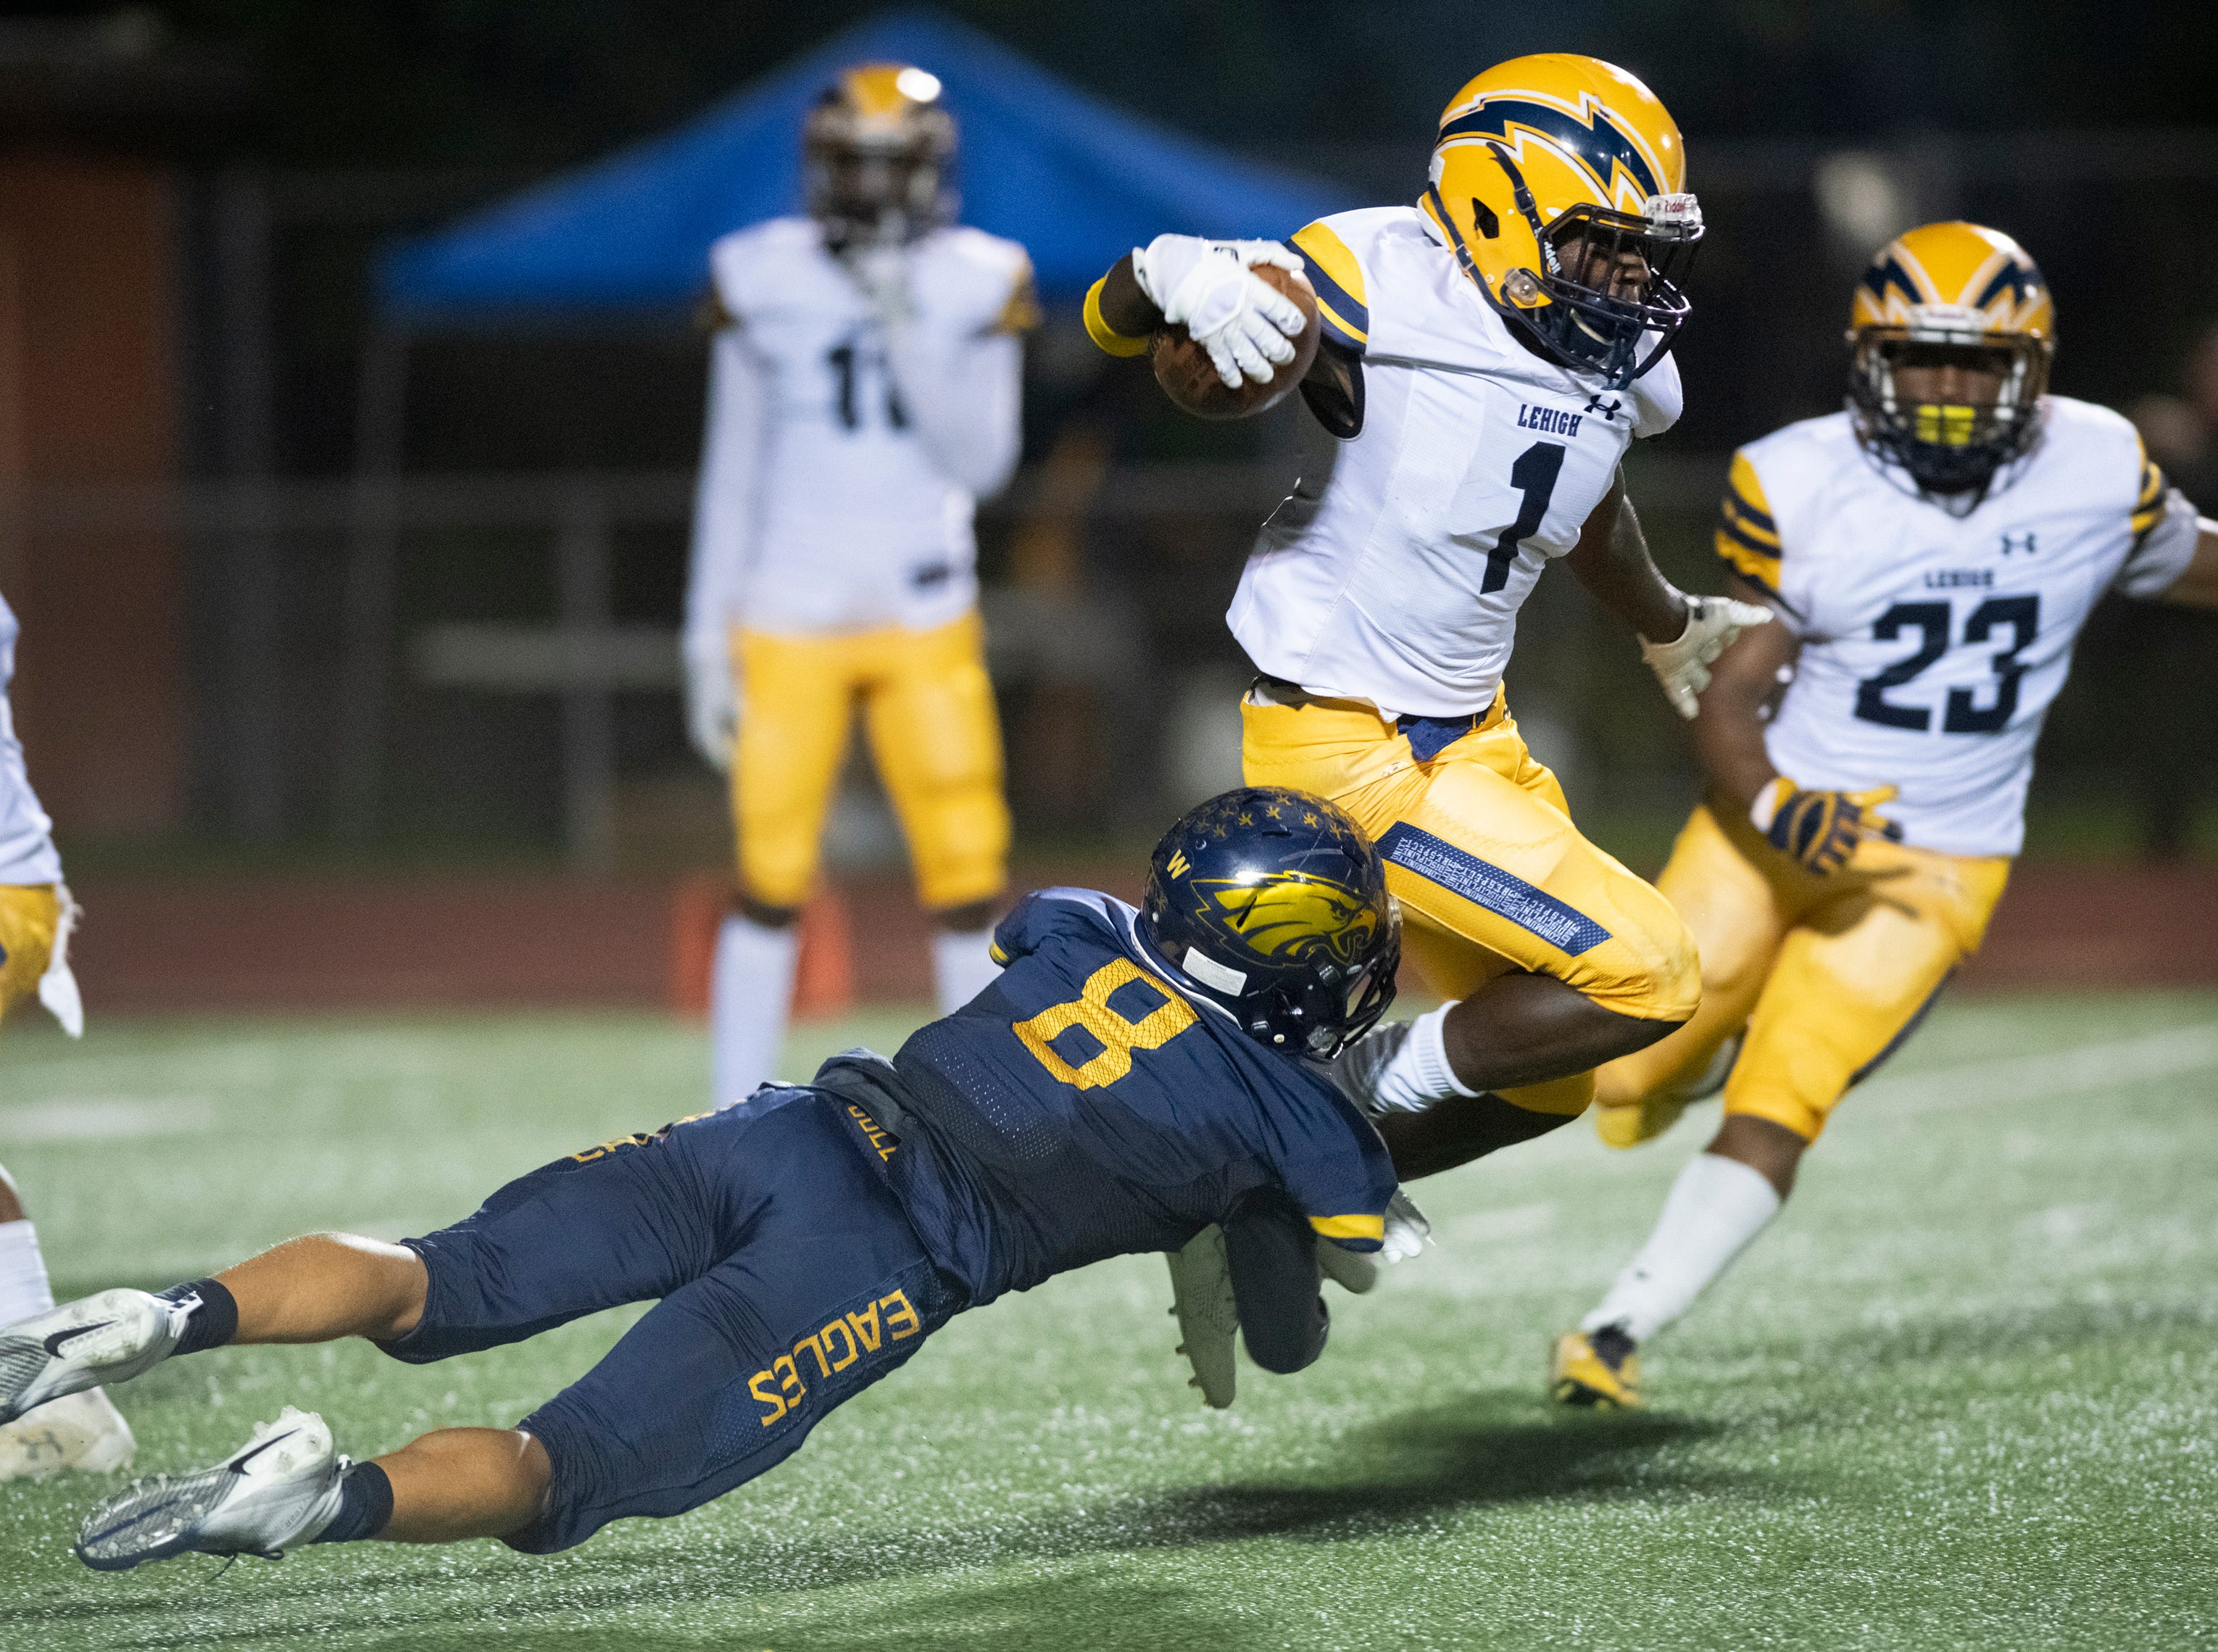 Al'Jarius Kelly of Lehigh is tackled by Tre Smith of Naples as he runs with the ball during the Class 6A regional quarterfinal playoff game at Naples High on Friday night, November 9, 2018.